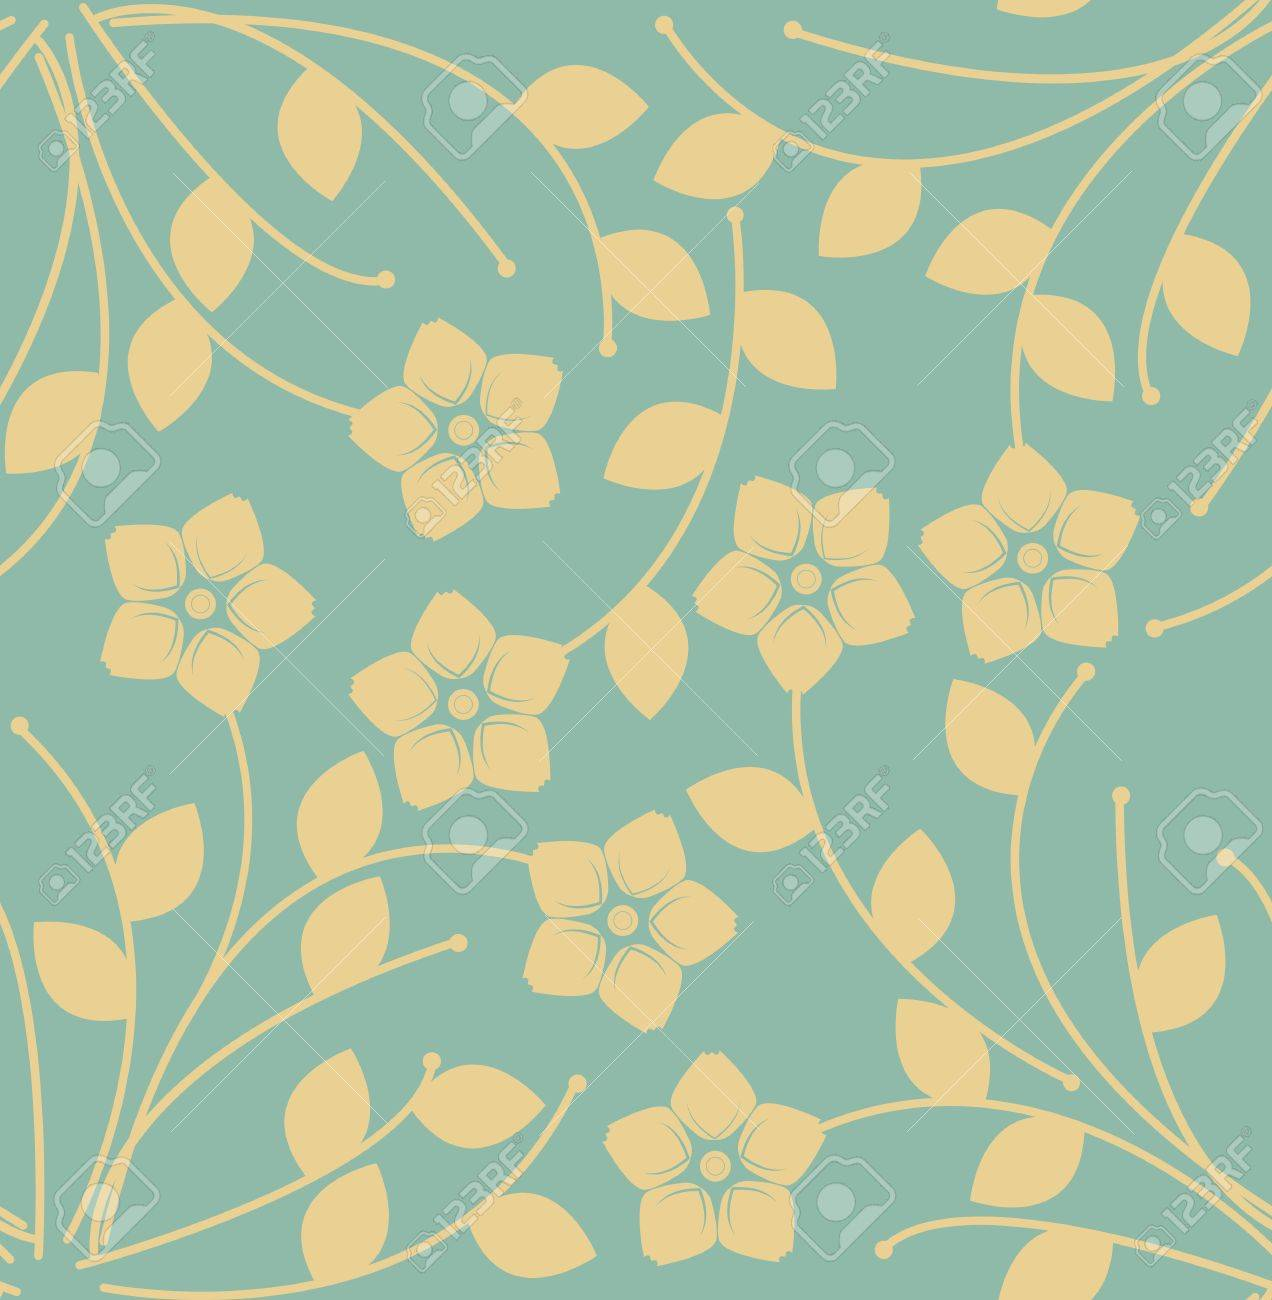 elegant endless pattern with decorative flowers and leaves can